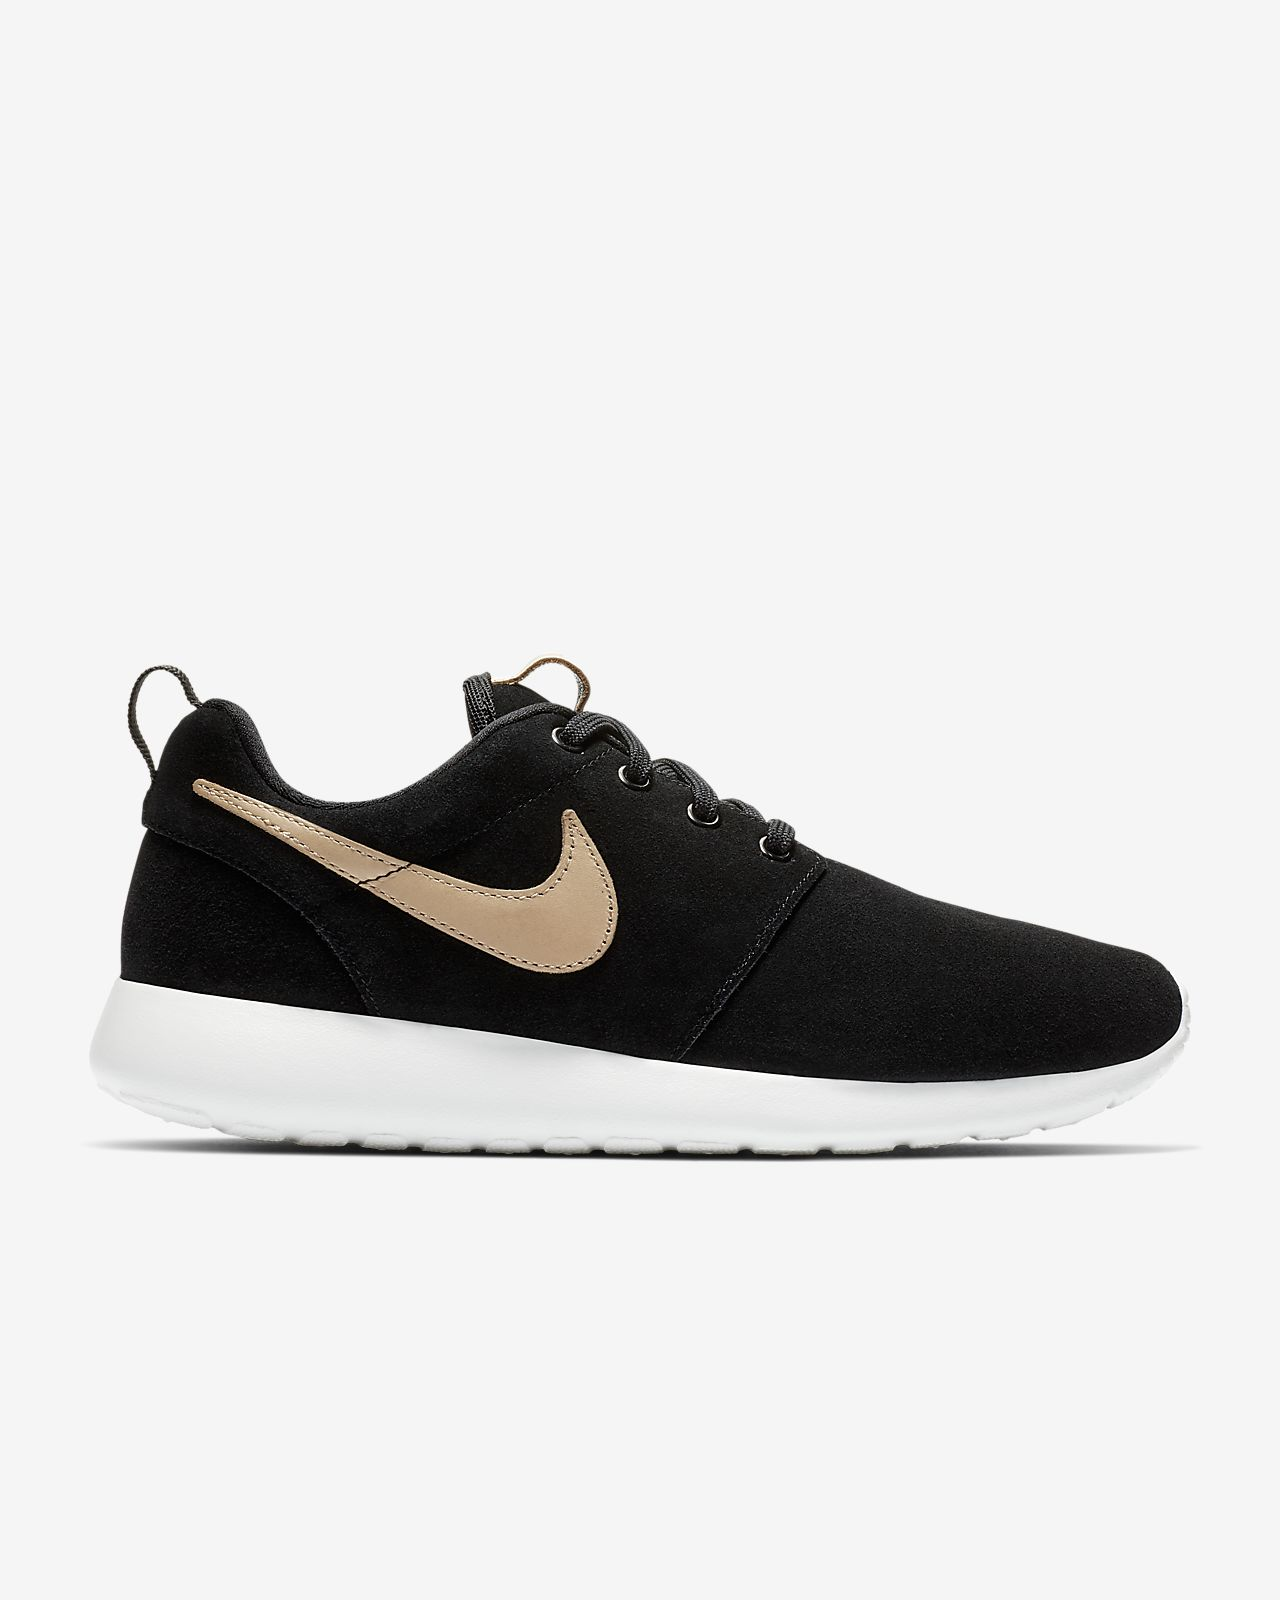 huge discount 1cb16 23320 ... Nike Roshe One Premium Women s Shoe